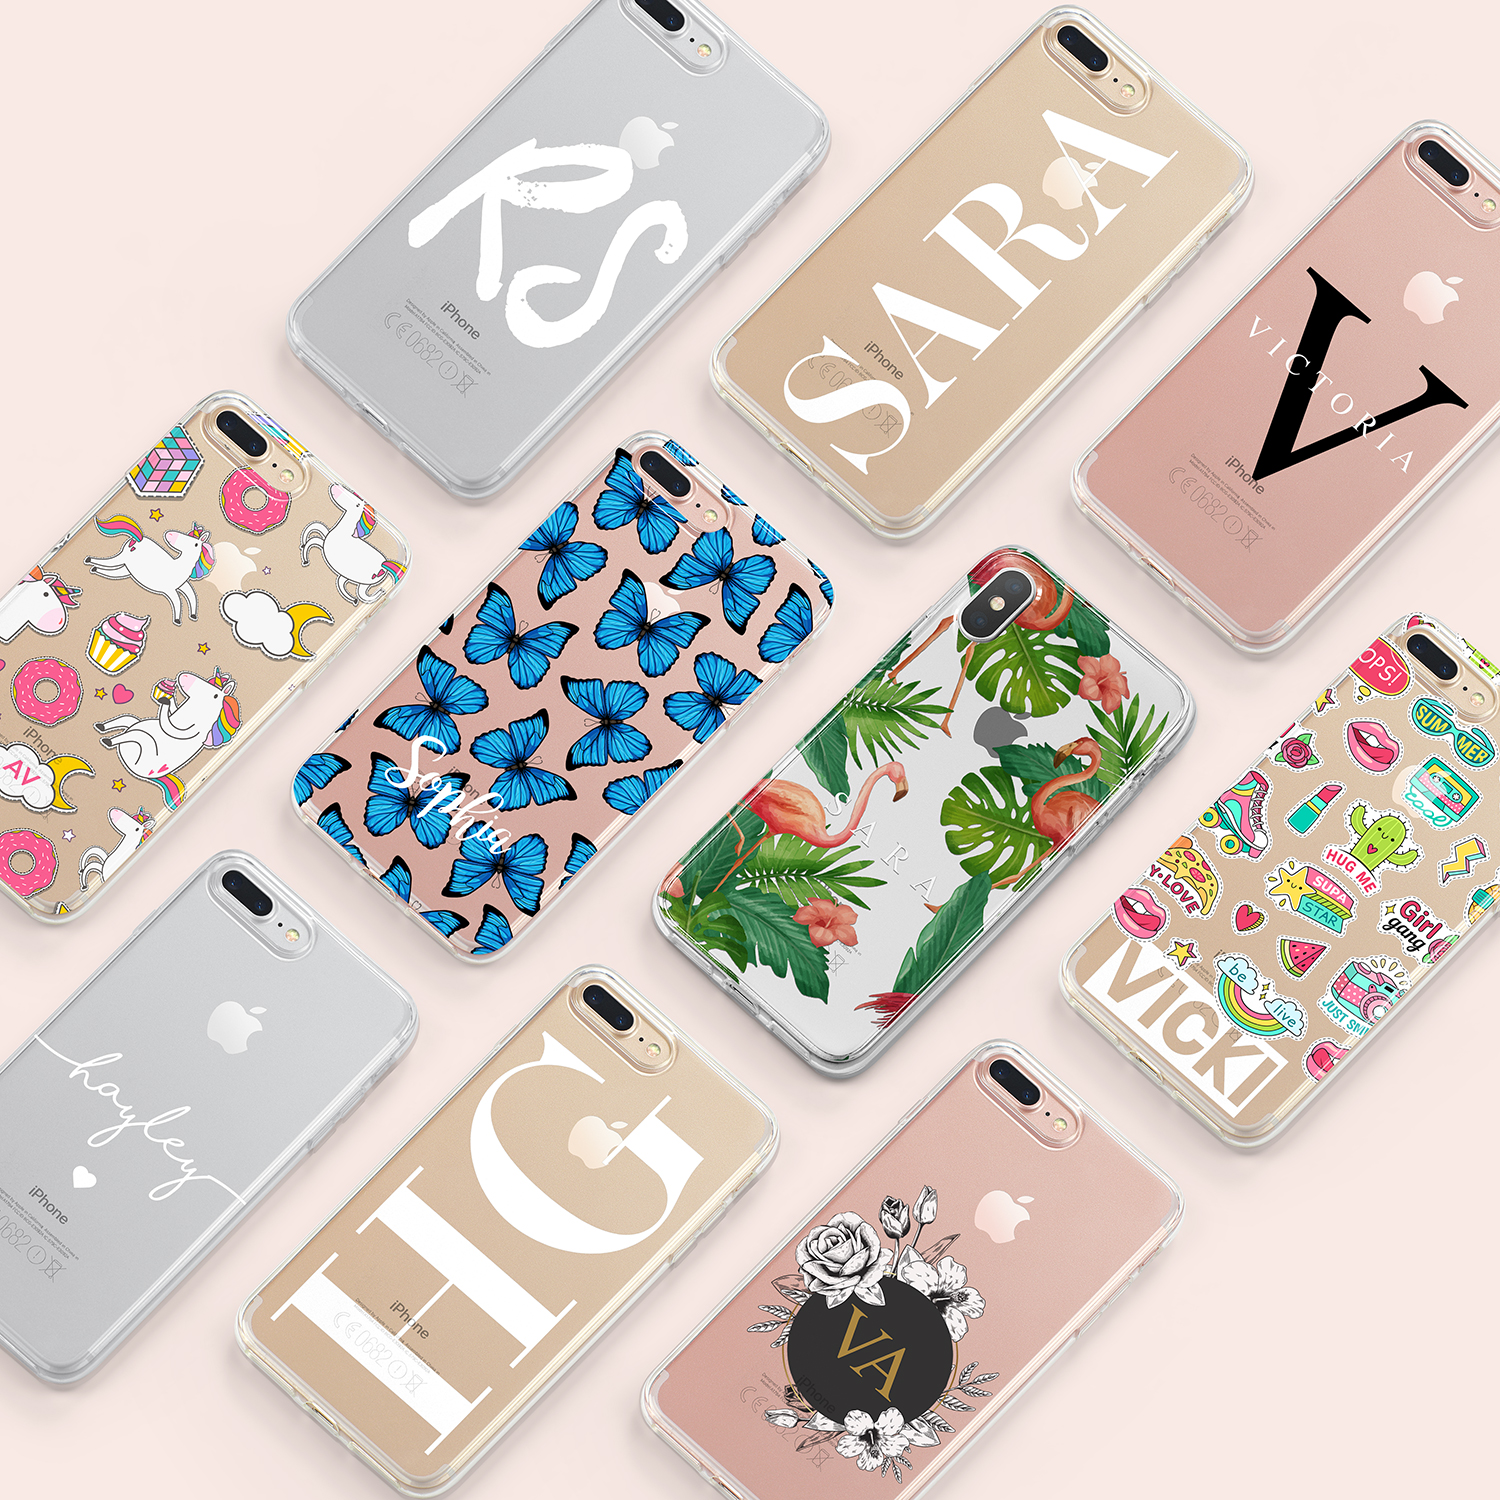 Clear Phone Cases Hard & Soft Gel Designs | Wrappz